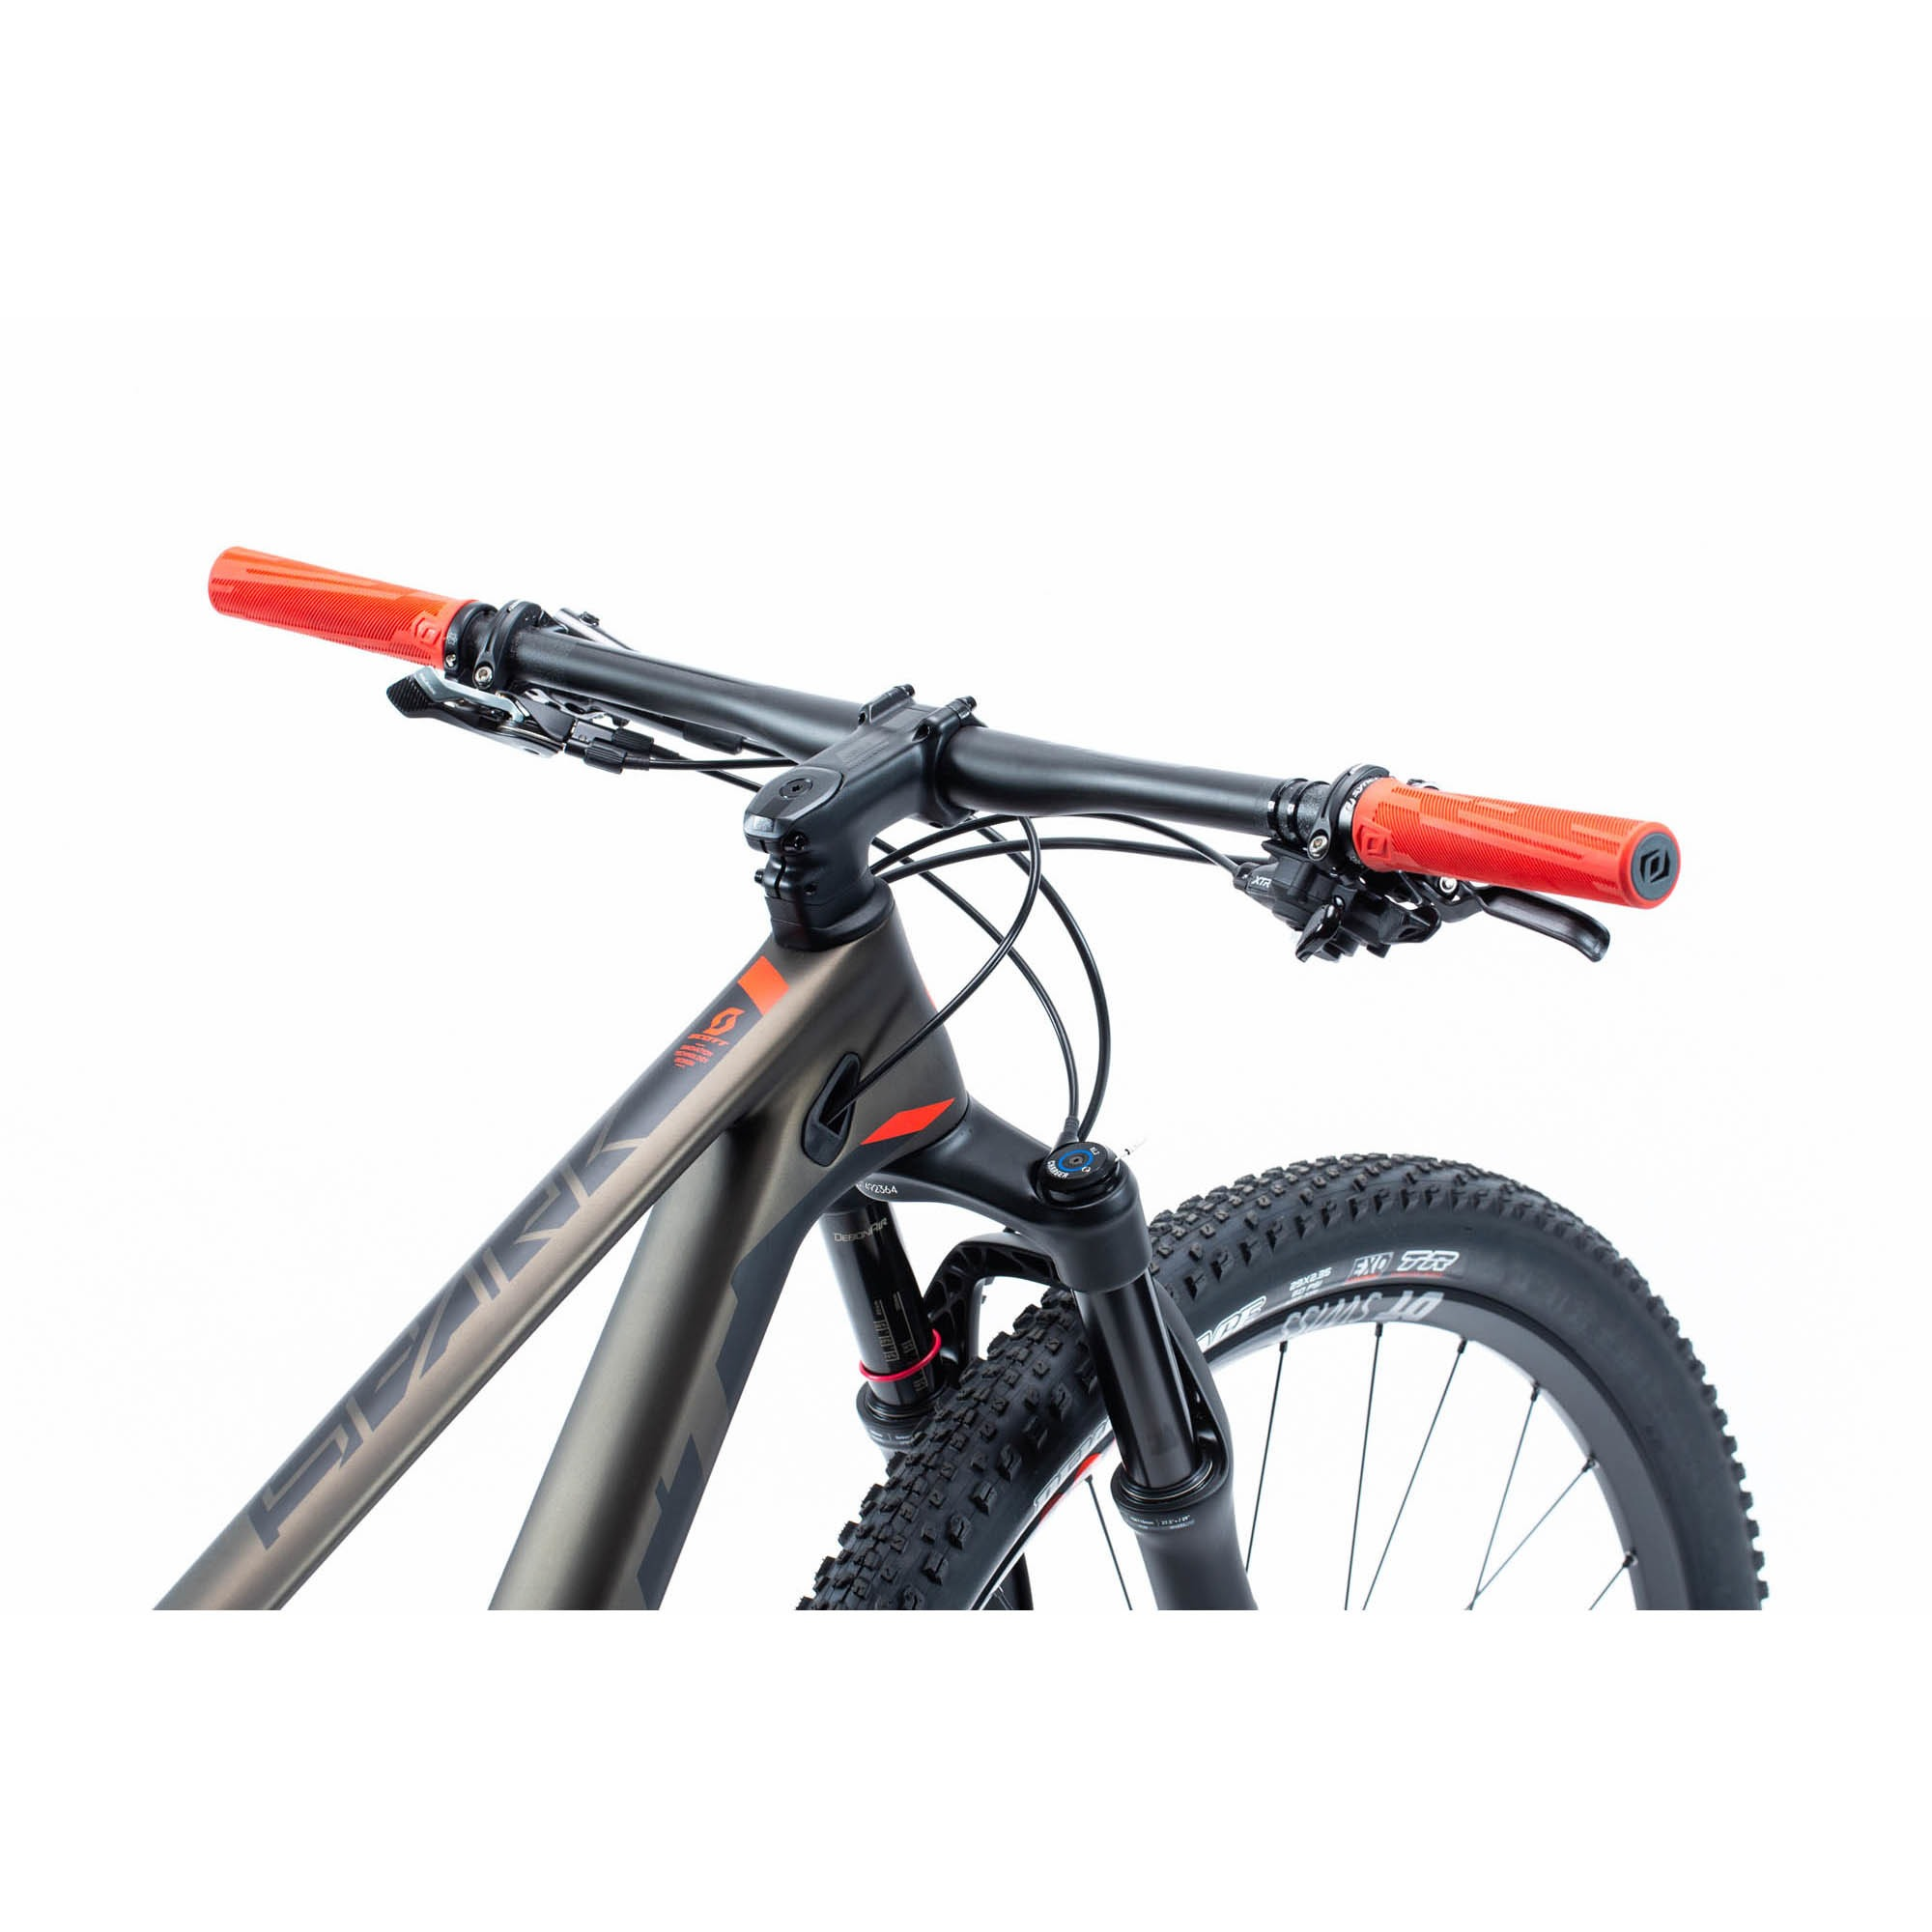 SCOTT Spark RC 900 Pro Bike